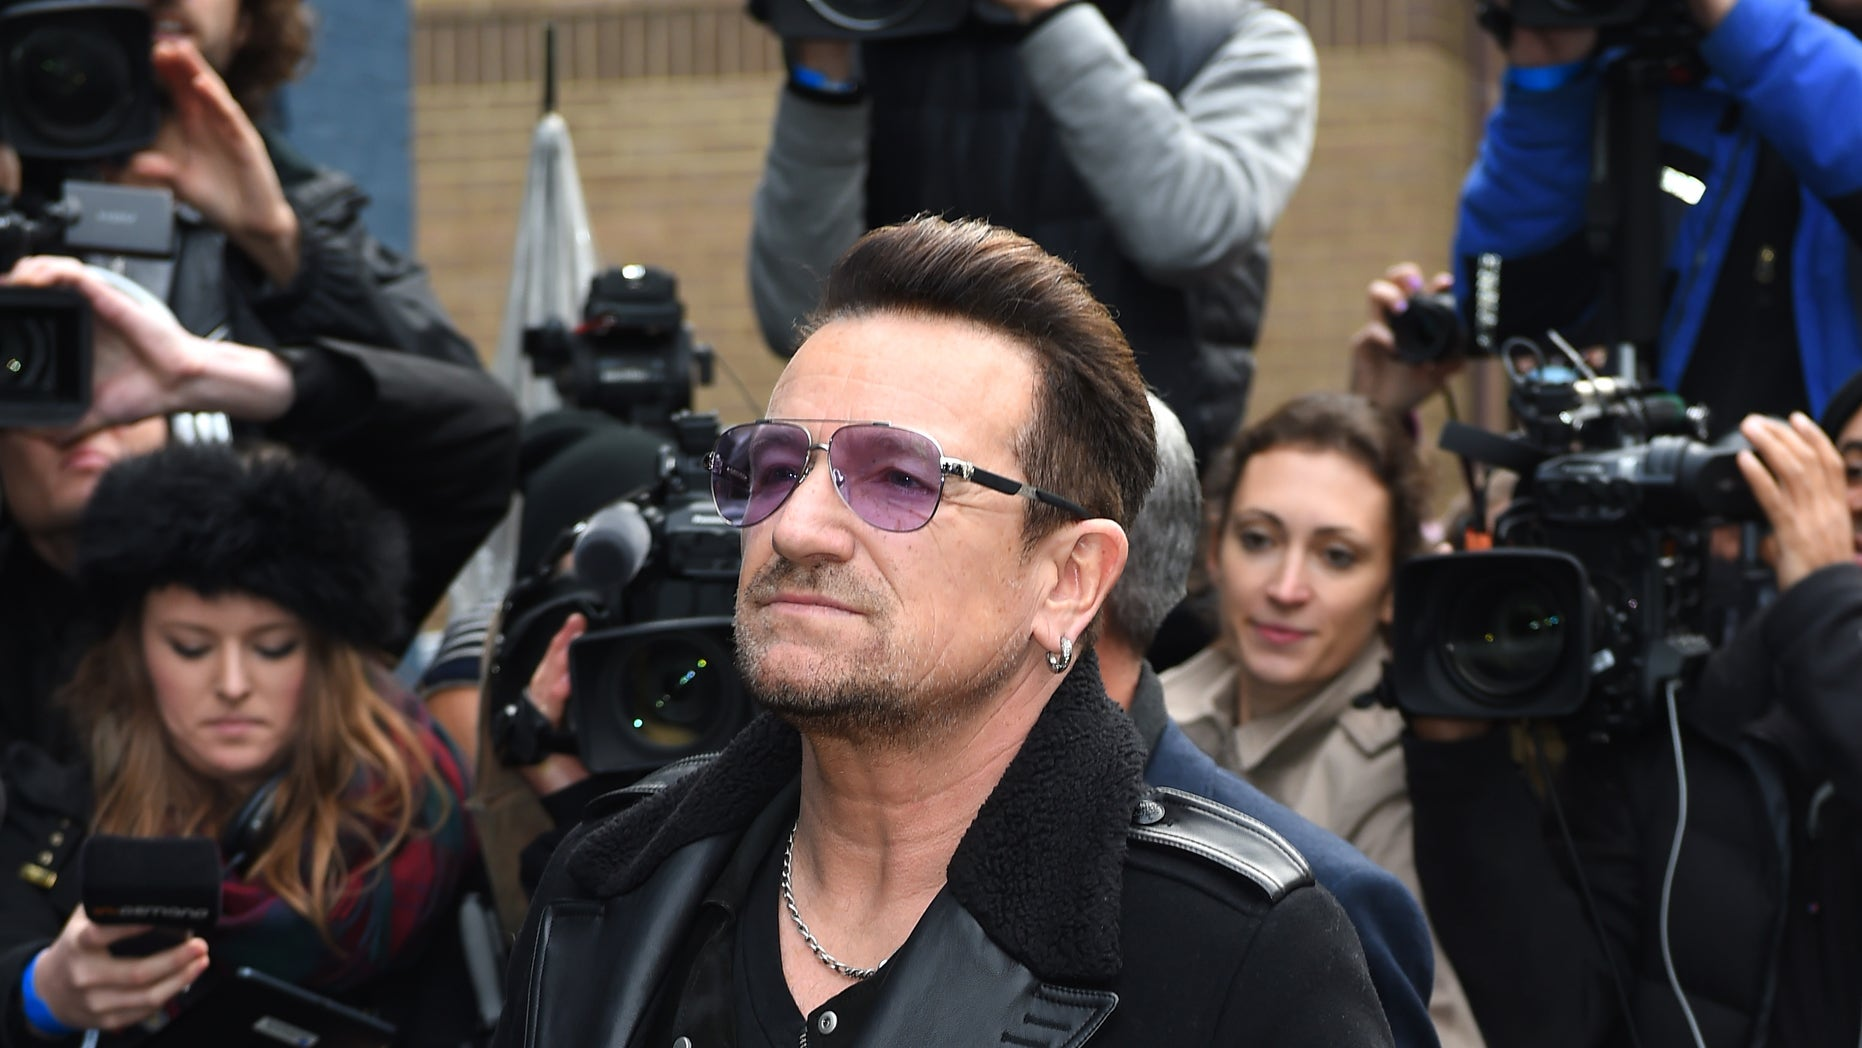 November 15, 2014. Singer Bono arrives at a music studio to record his segment of the new Band Aid 30 charity single in London.